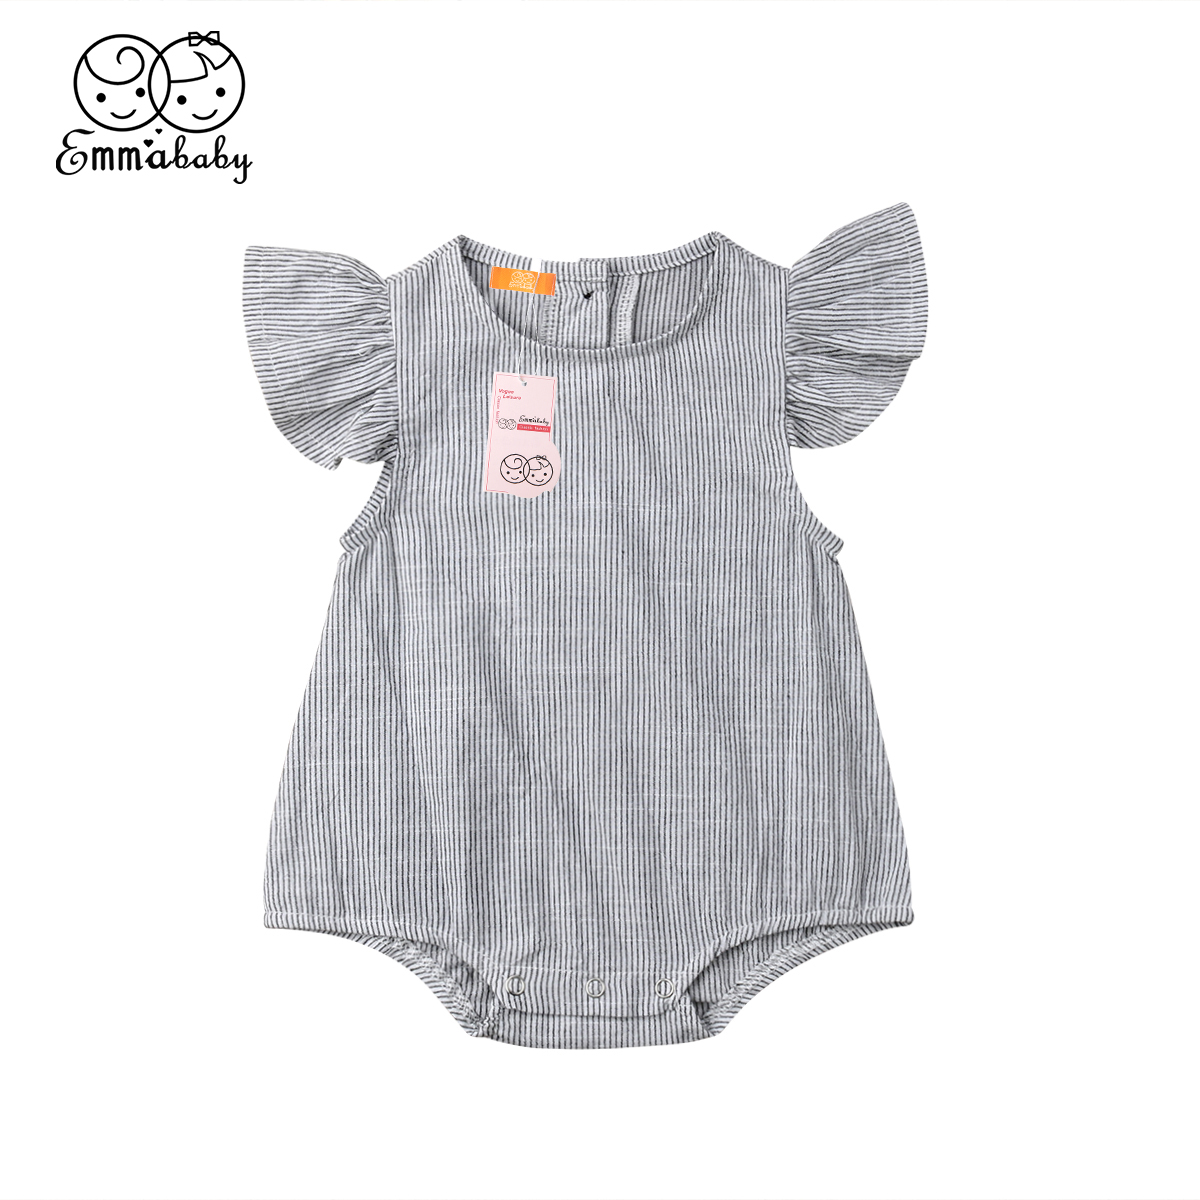 2019 Brand New Newborn Baby Girls Clothes Cotton Striped Romper Jumpsuit Outfit  Summer